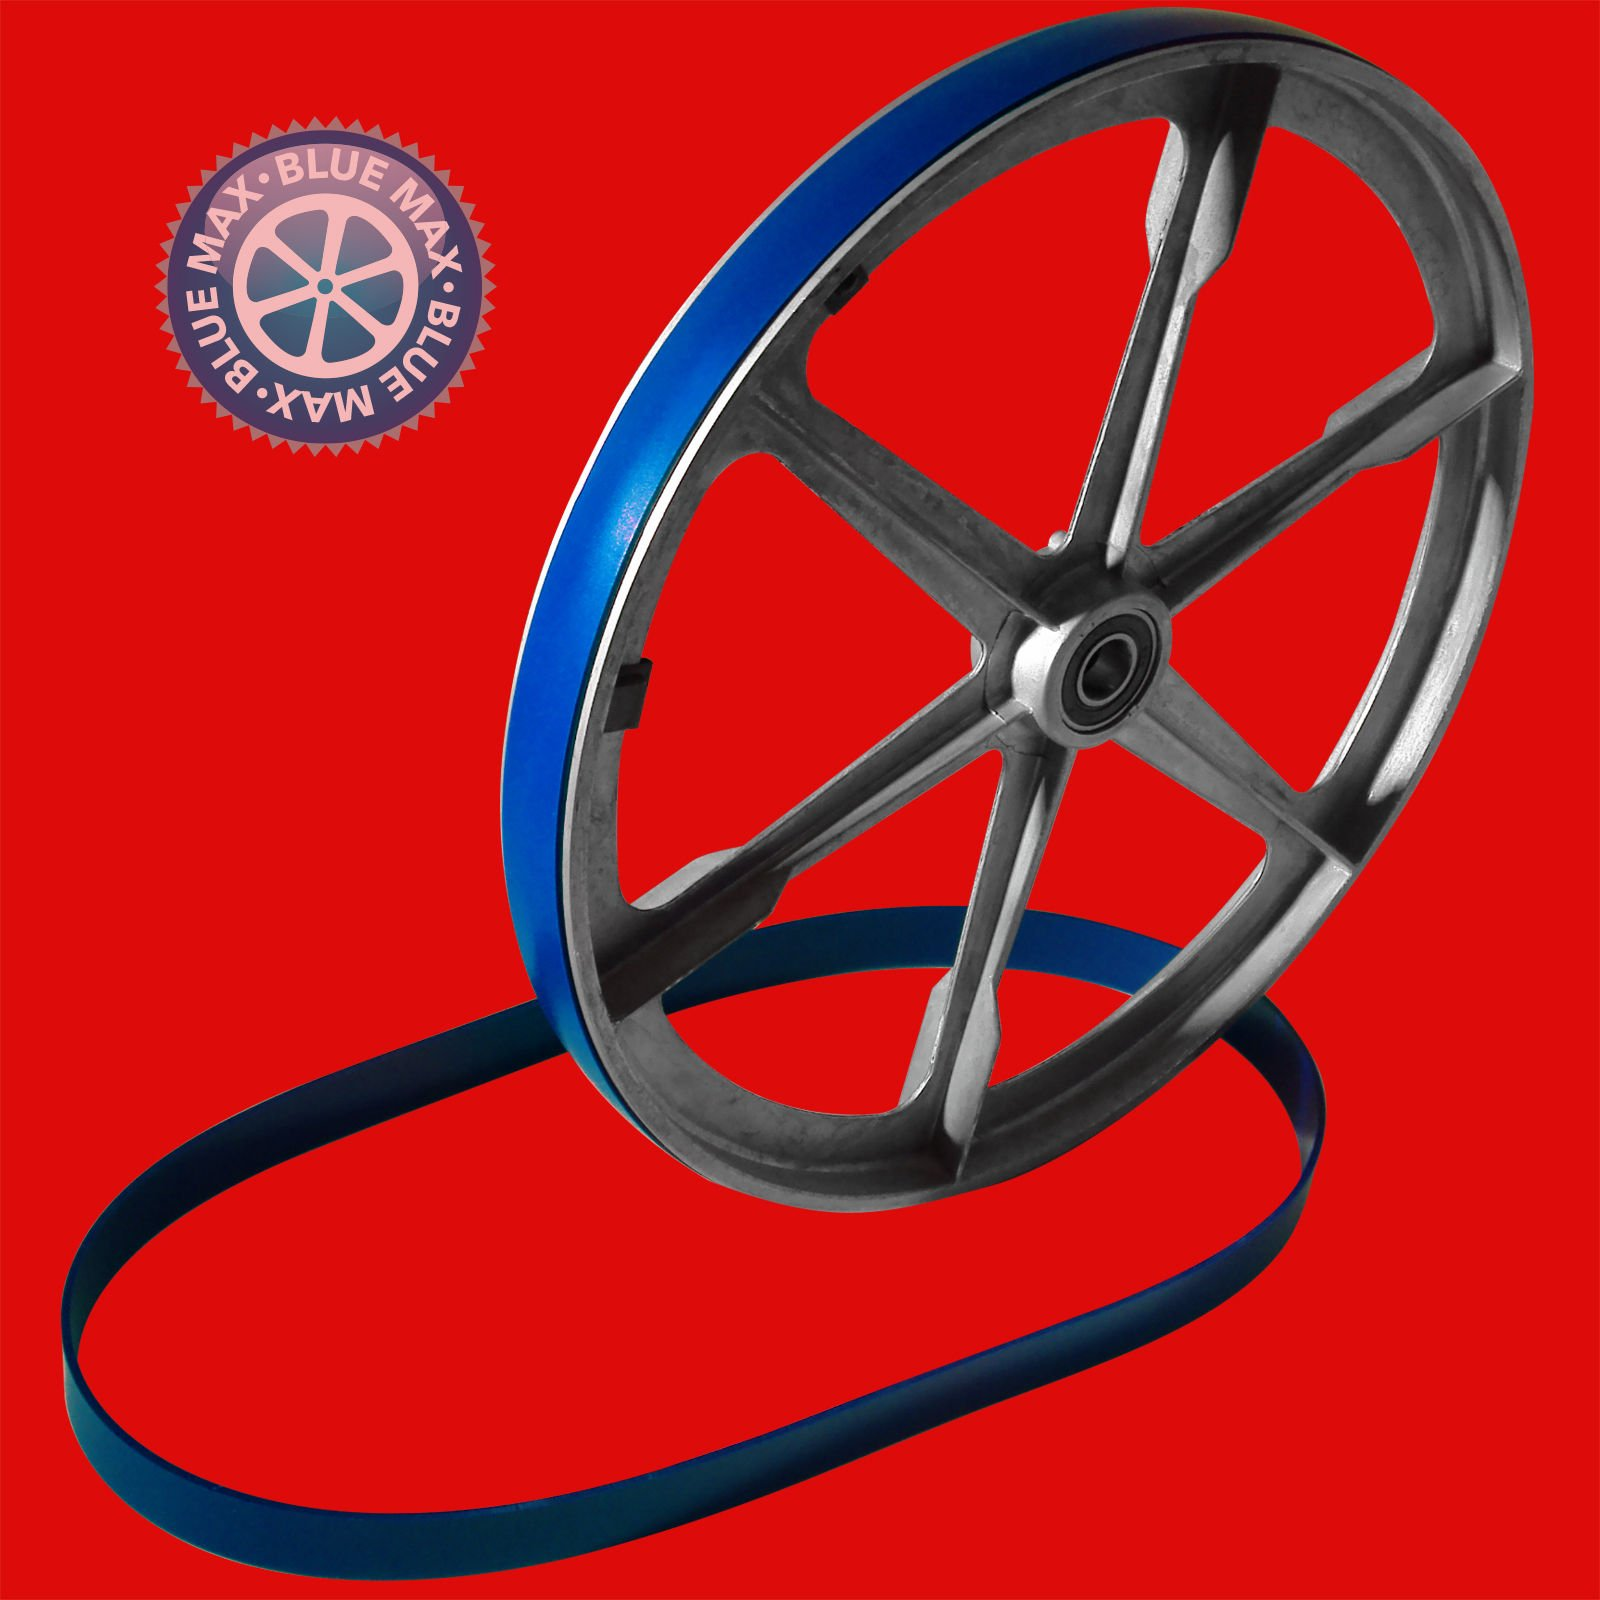 2 BLUE MAX ULTRA DUTY URETHANE BAND SAW TIRES REPLACES DAKE 300459 TIRES by Generic